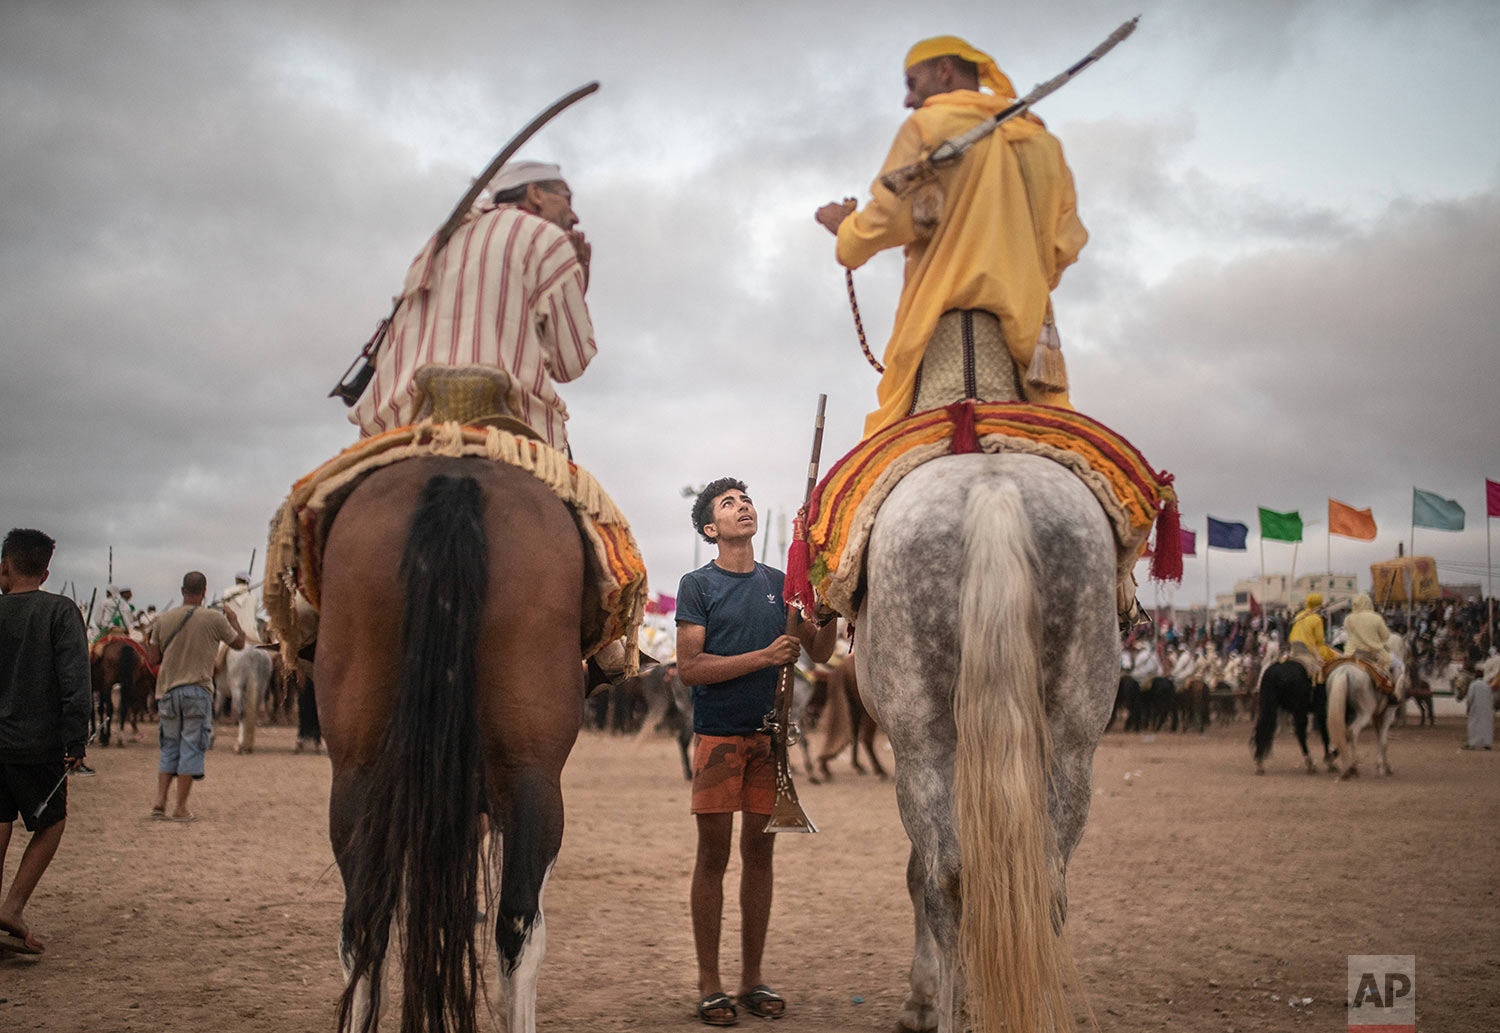 A boy hands a file to horse riders waiting for their turn to take part in an equestrian show known as Fantasia or Tabourida, in the coastal town of El Jadida, Morocco, July 25, 2019. (AP Photo/Mosa'ab Elshamy)